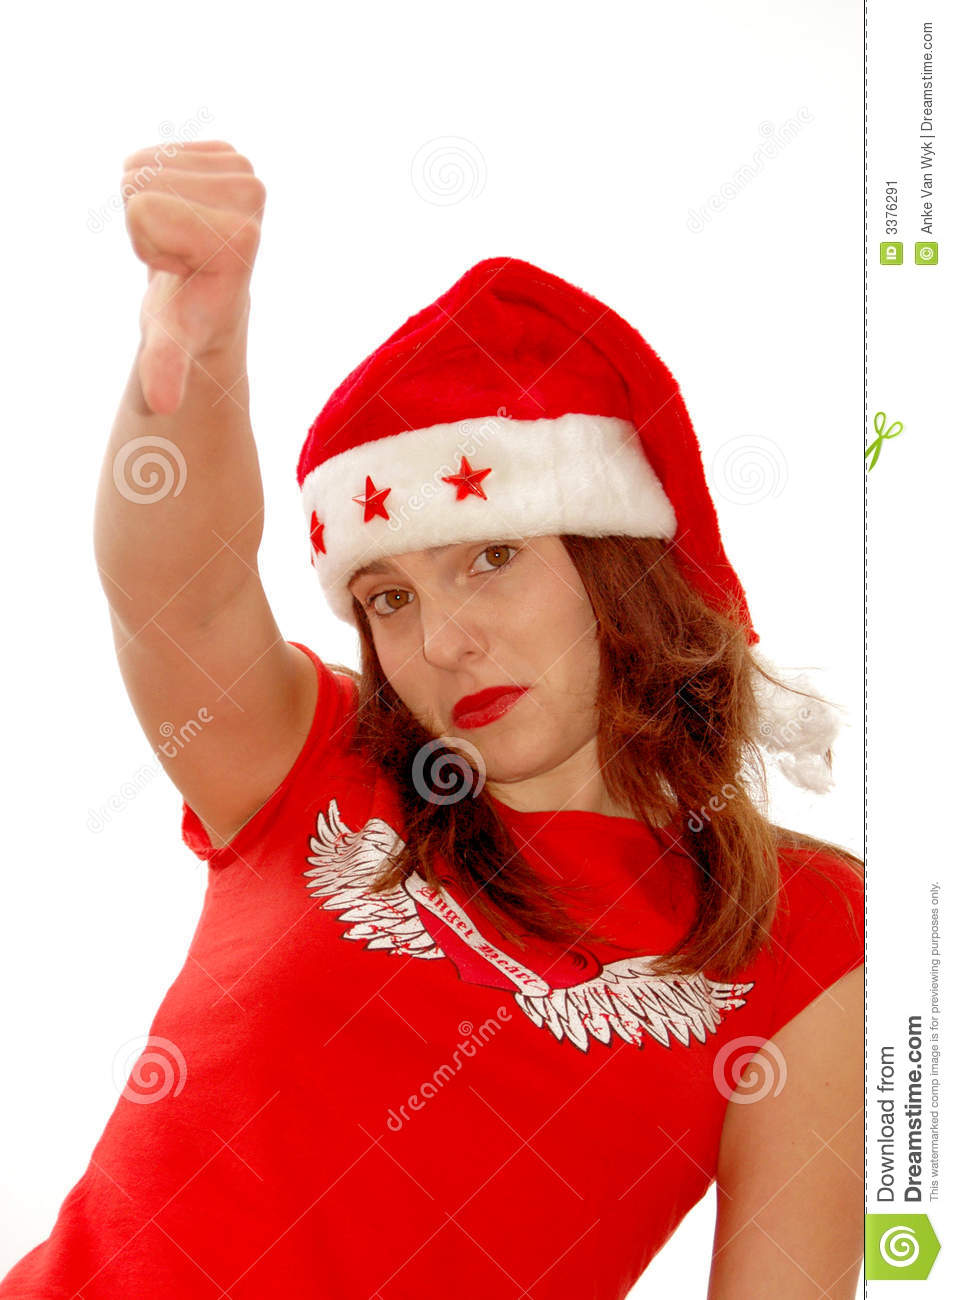 Bad Christmas Stock Image - Image: 3376291